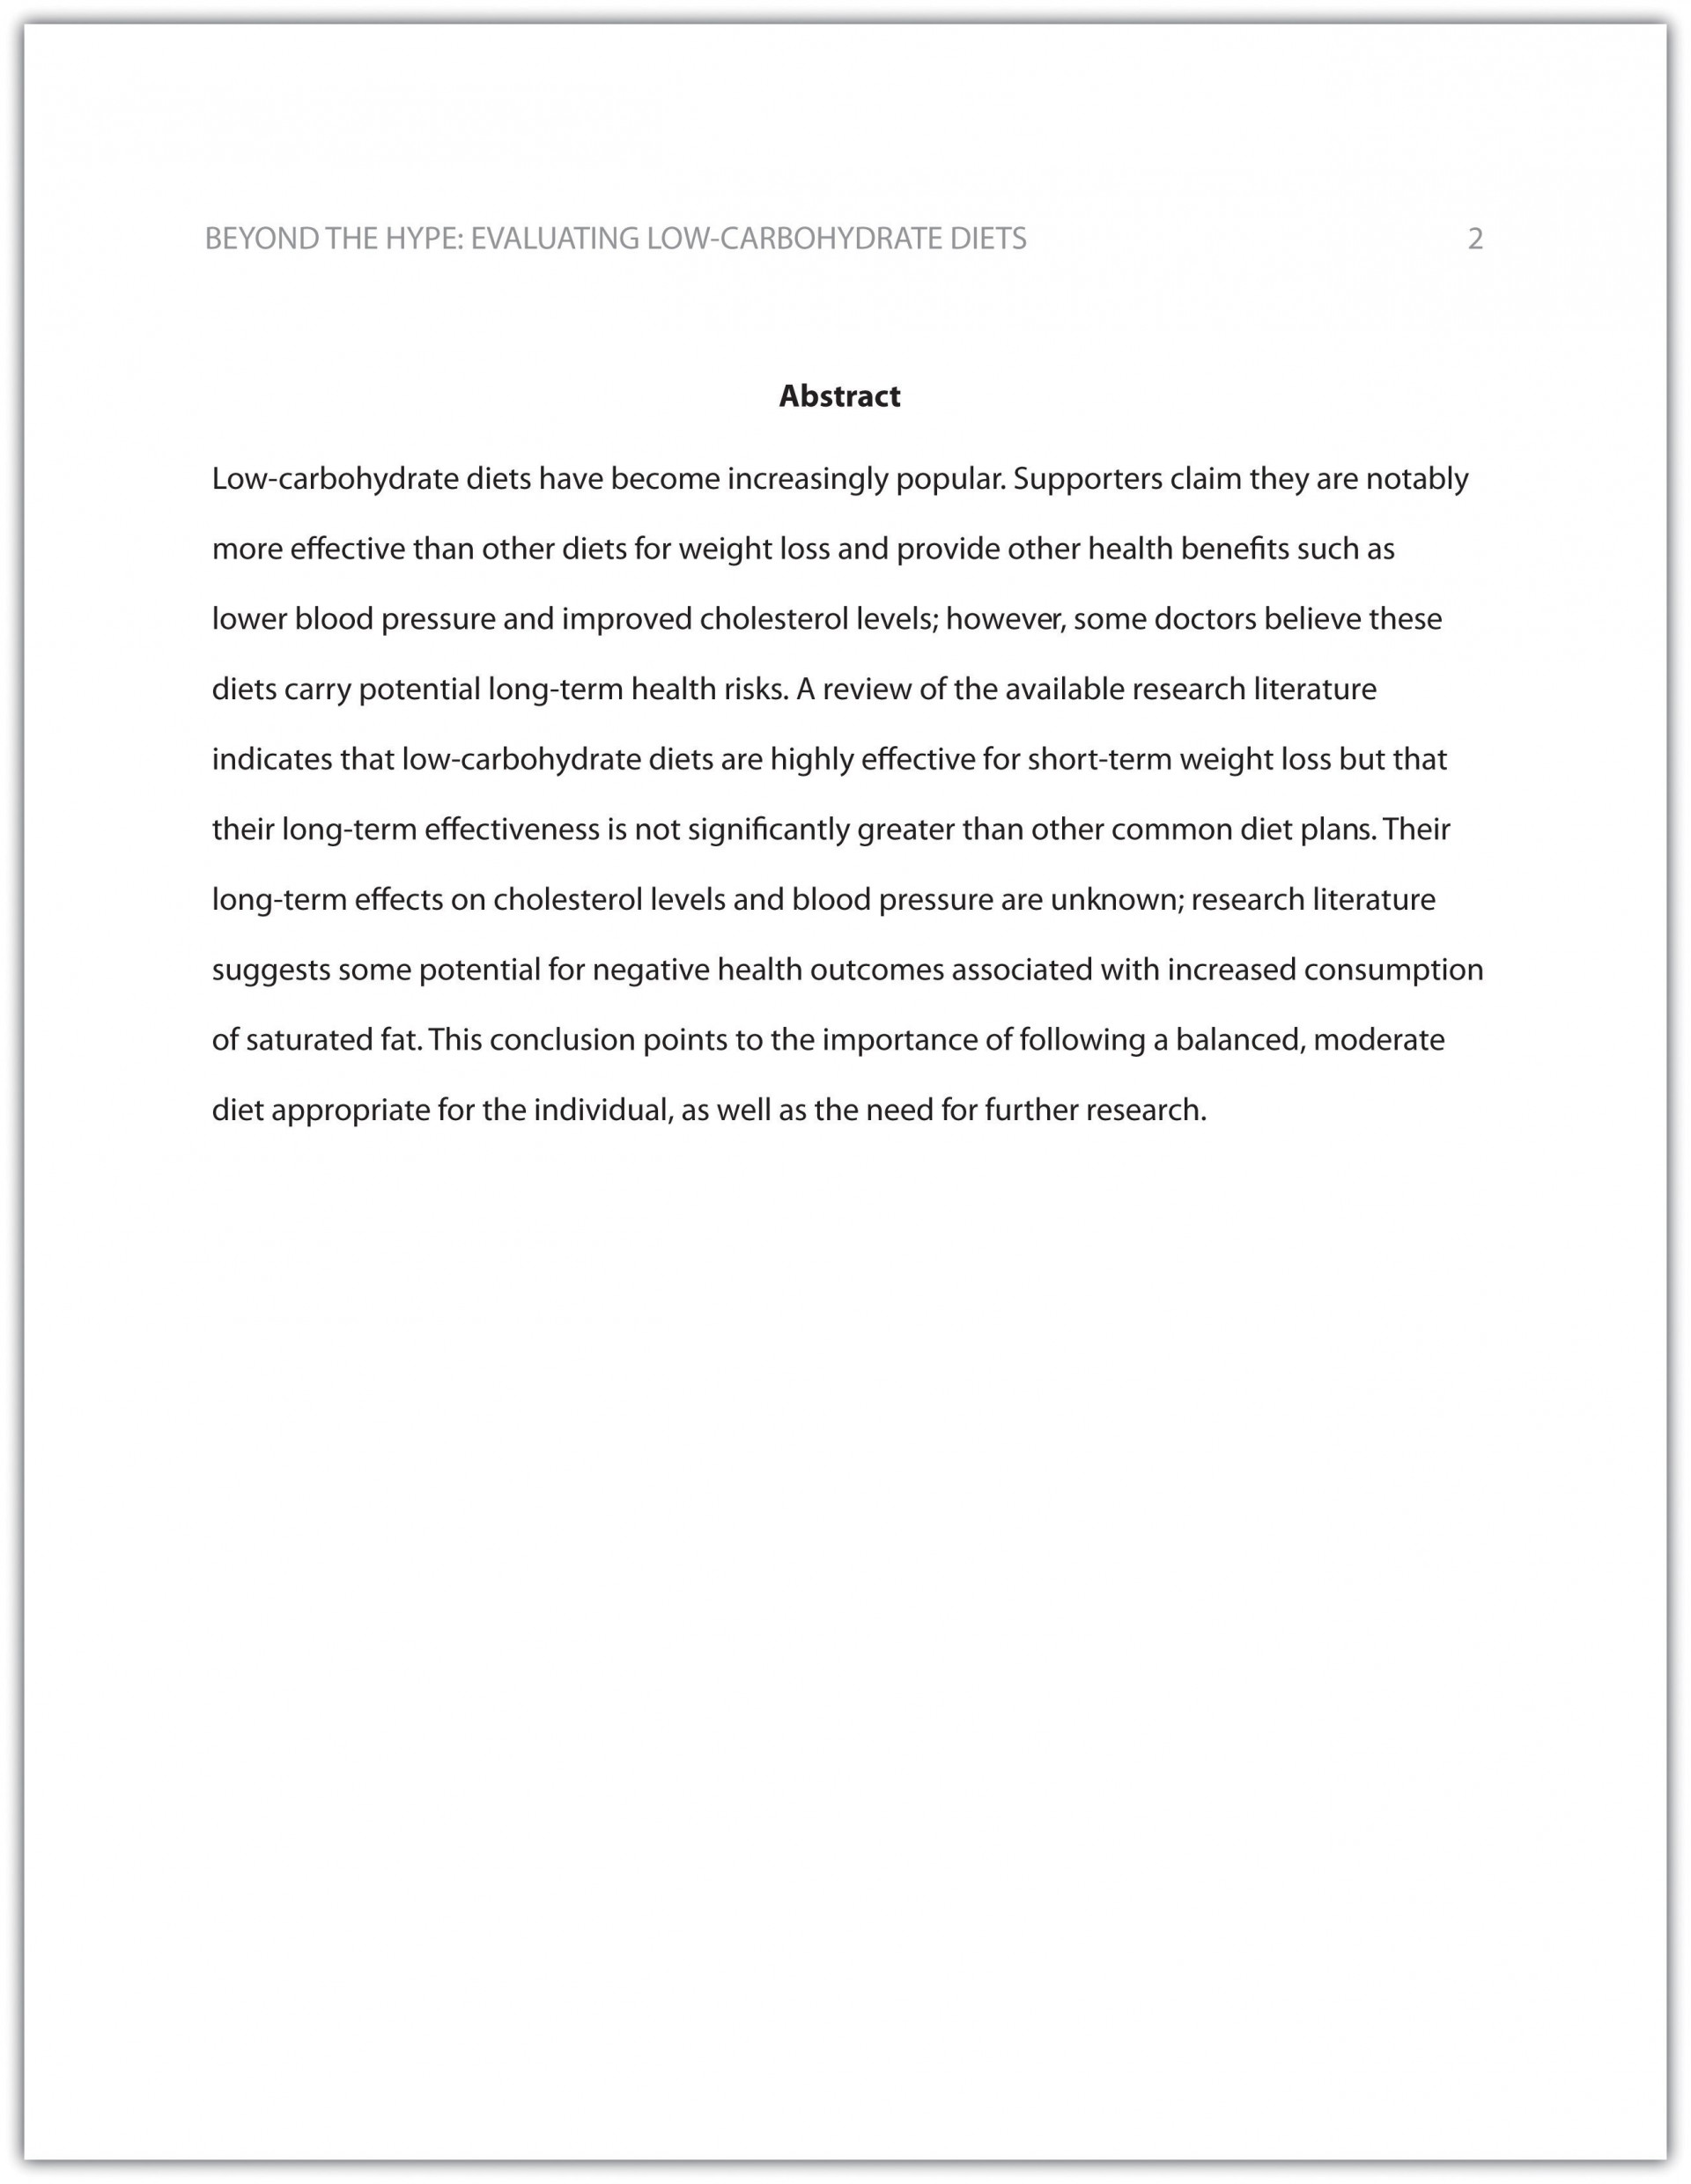 002 Abstract In Research Paper Apa Rare For Style Sample Without 1920